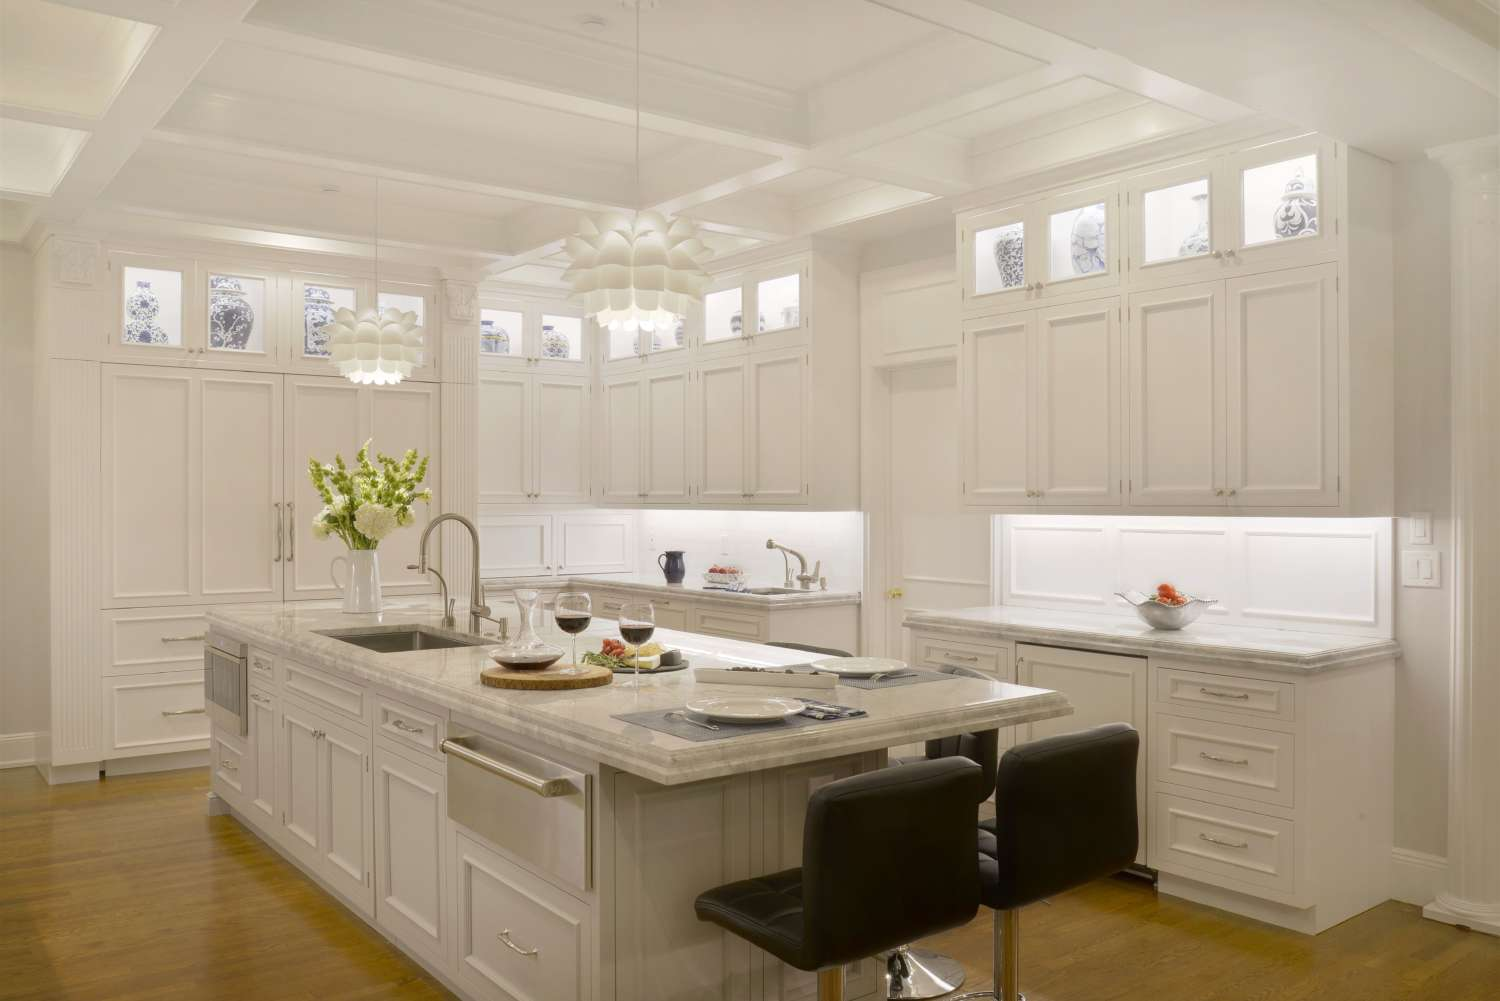 Lit upper cabinets, under cabinet lighting and white flower pendant lights help this large transitional kitchen glow. Fully custom white painted Bilotta cabinetry.